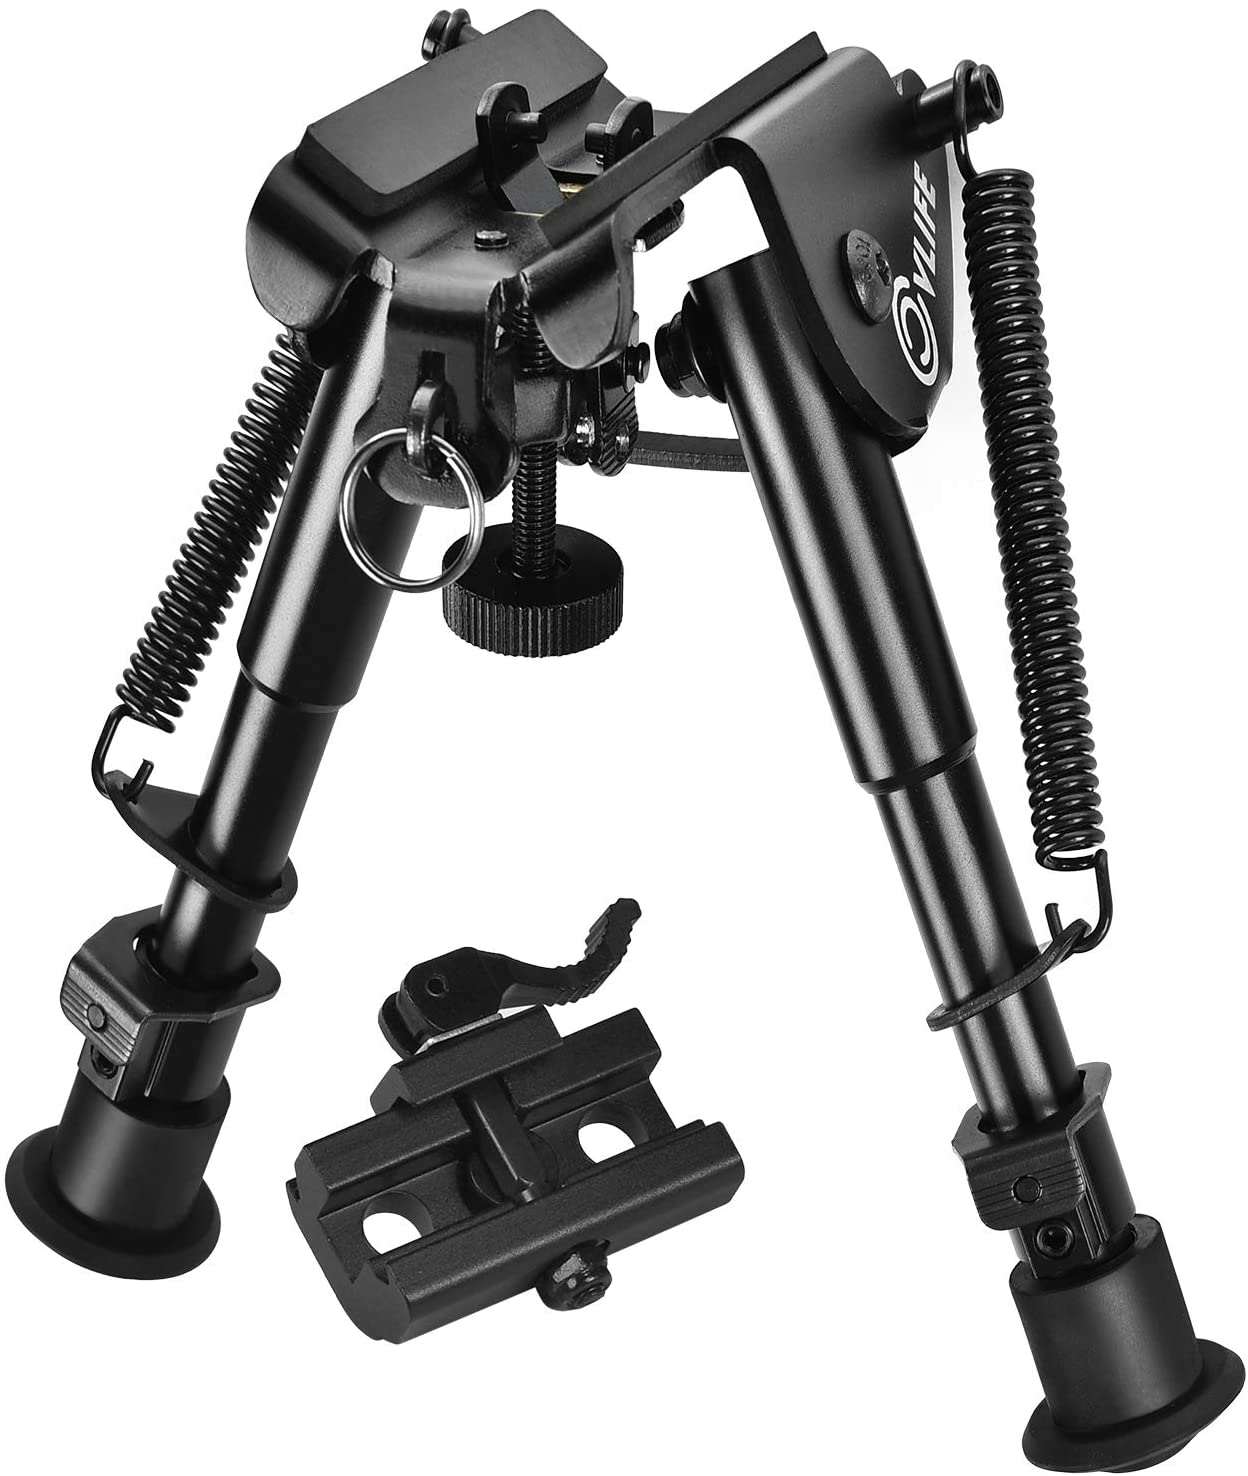 Best Hunting Bipods For Rifle 2021 Reviews 11